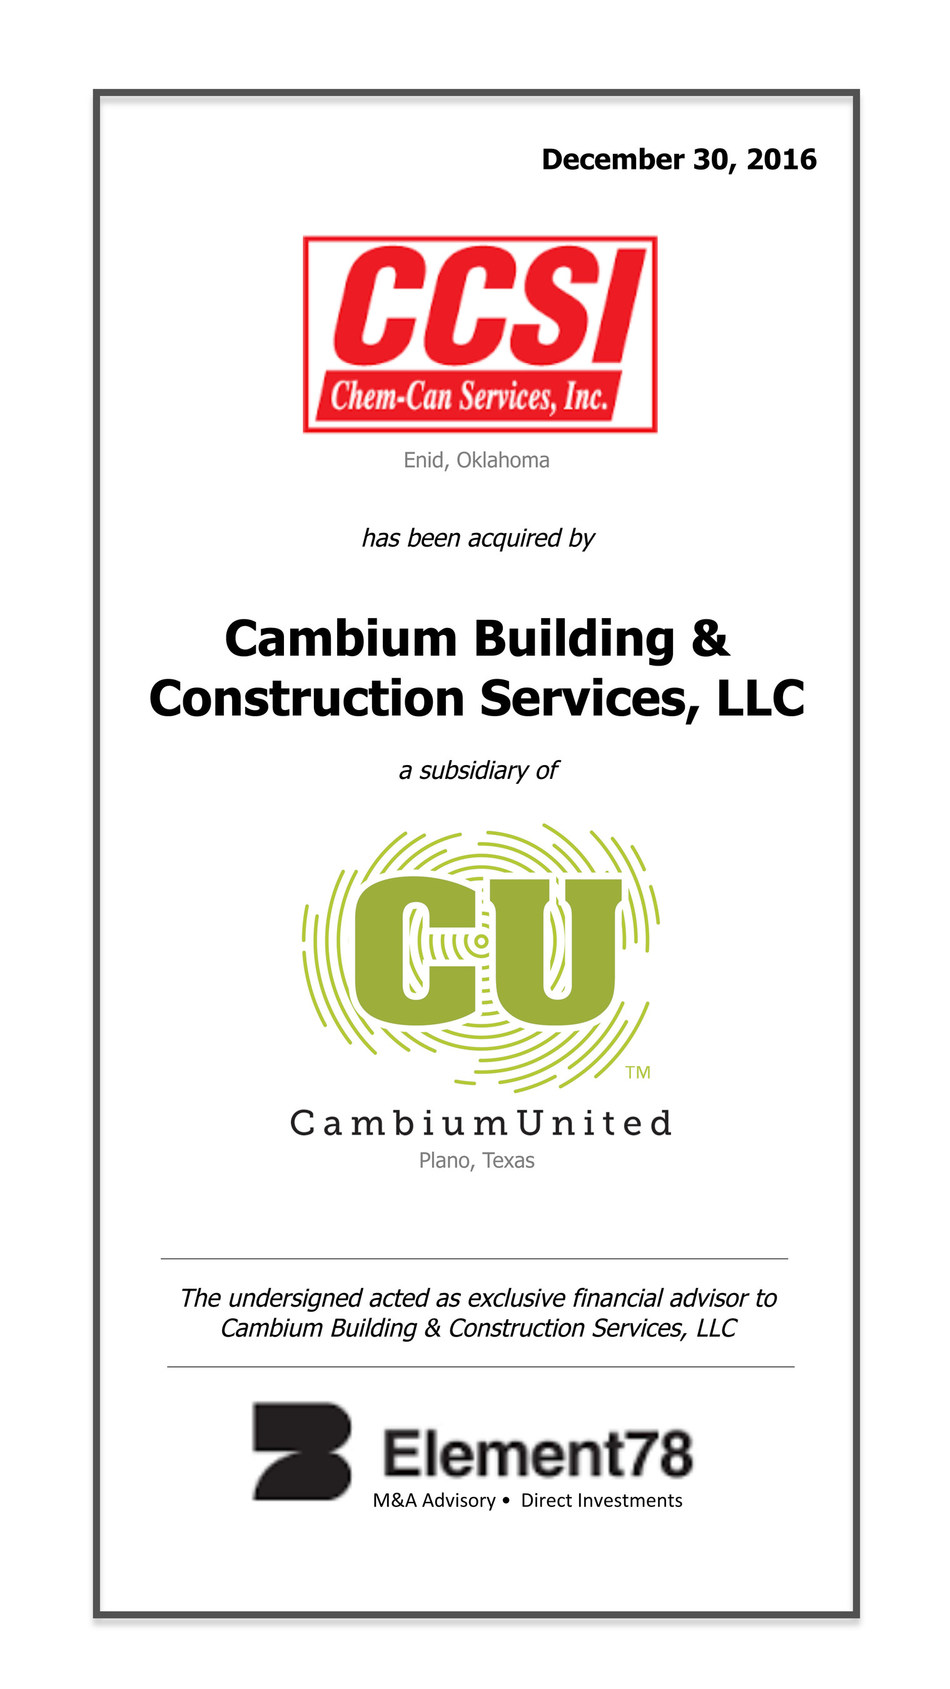 Cambium Building & Construction Services, LLC purchases Chem-Can Services, Inc.